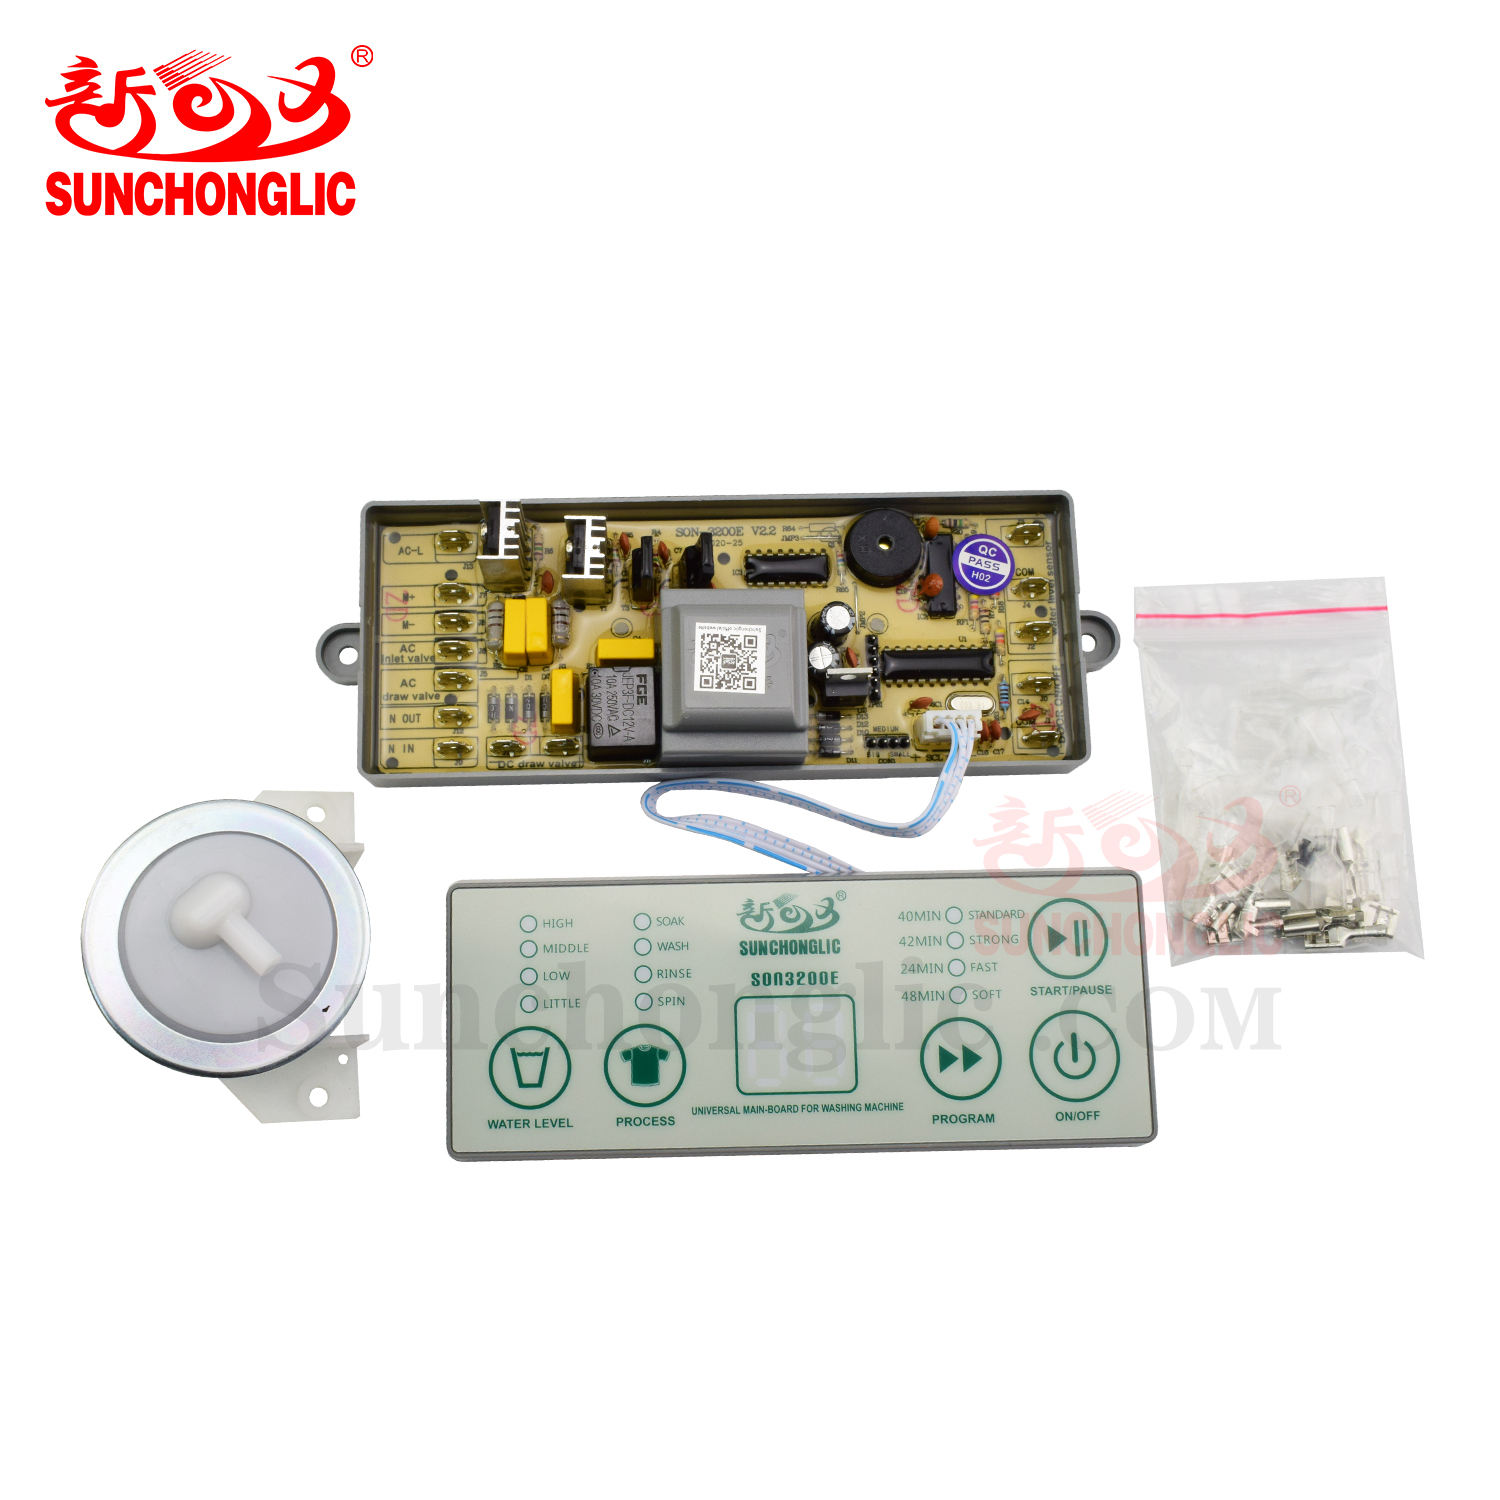 Sunchonglic factory price buy washing machine parts universal washing machine pcb board